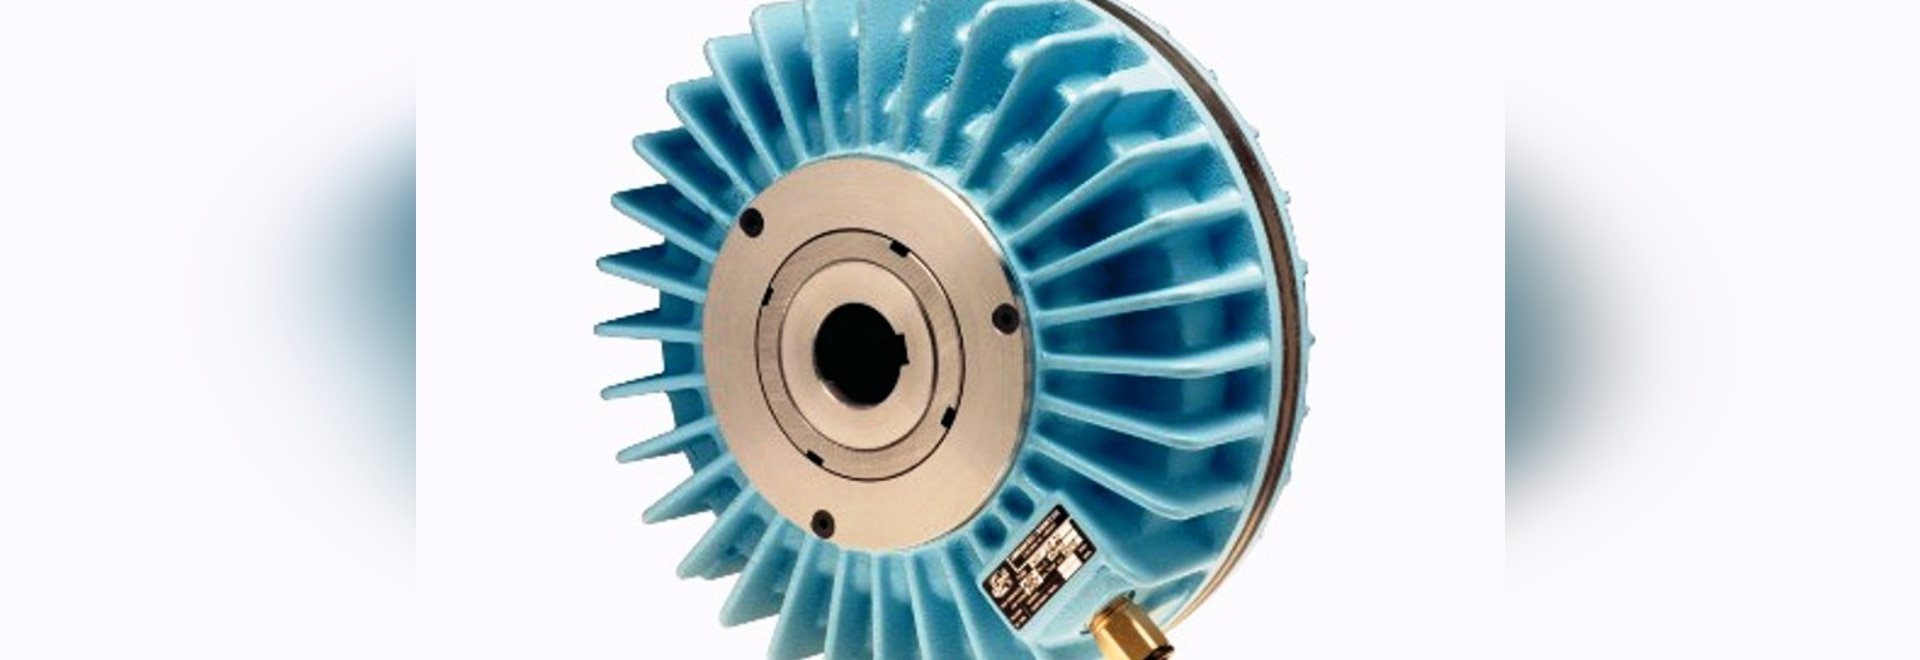 NEF self-supporting pneumatic clutch/brake without rotary air inlet.